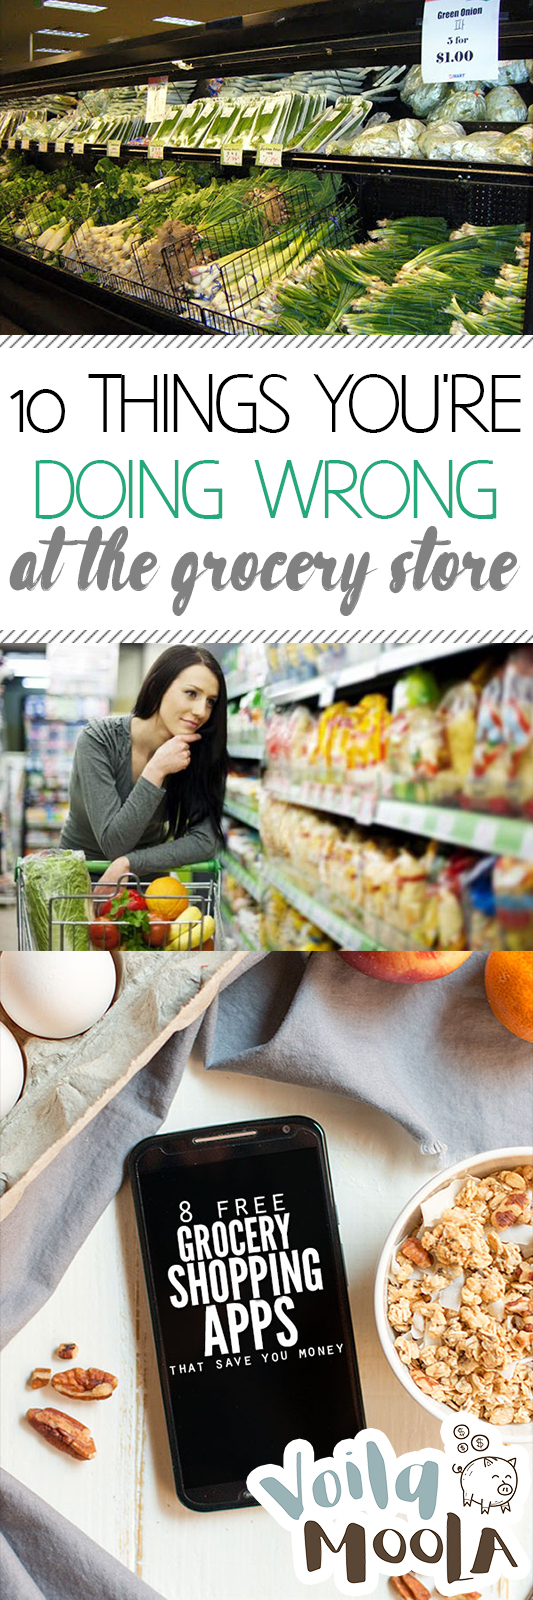 10 Things You're Doing Wrong at the Grocery Store| Grocery Store, Grocery Store Hacks, Save Money, Save Money Shopping, Shopping Hacks #PersonalFinance #SaveMoney #MakeMoney #MakeMoneyFast